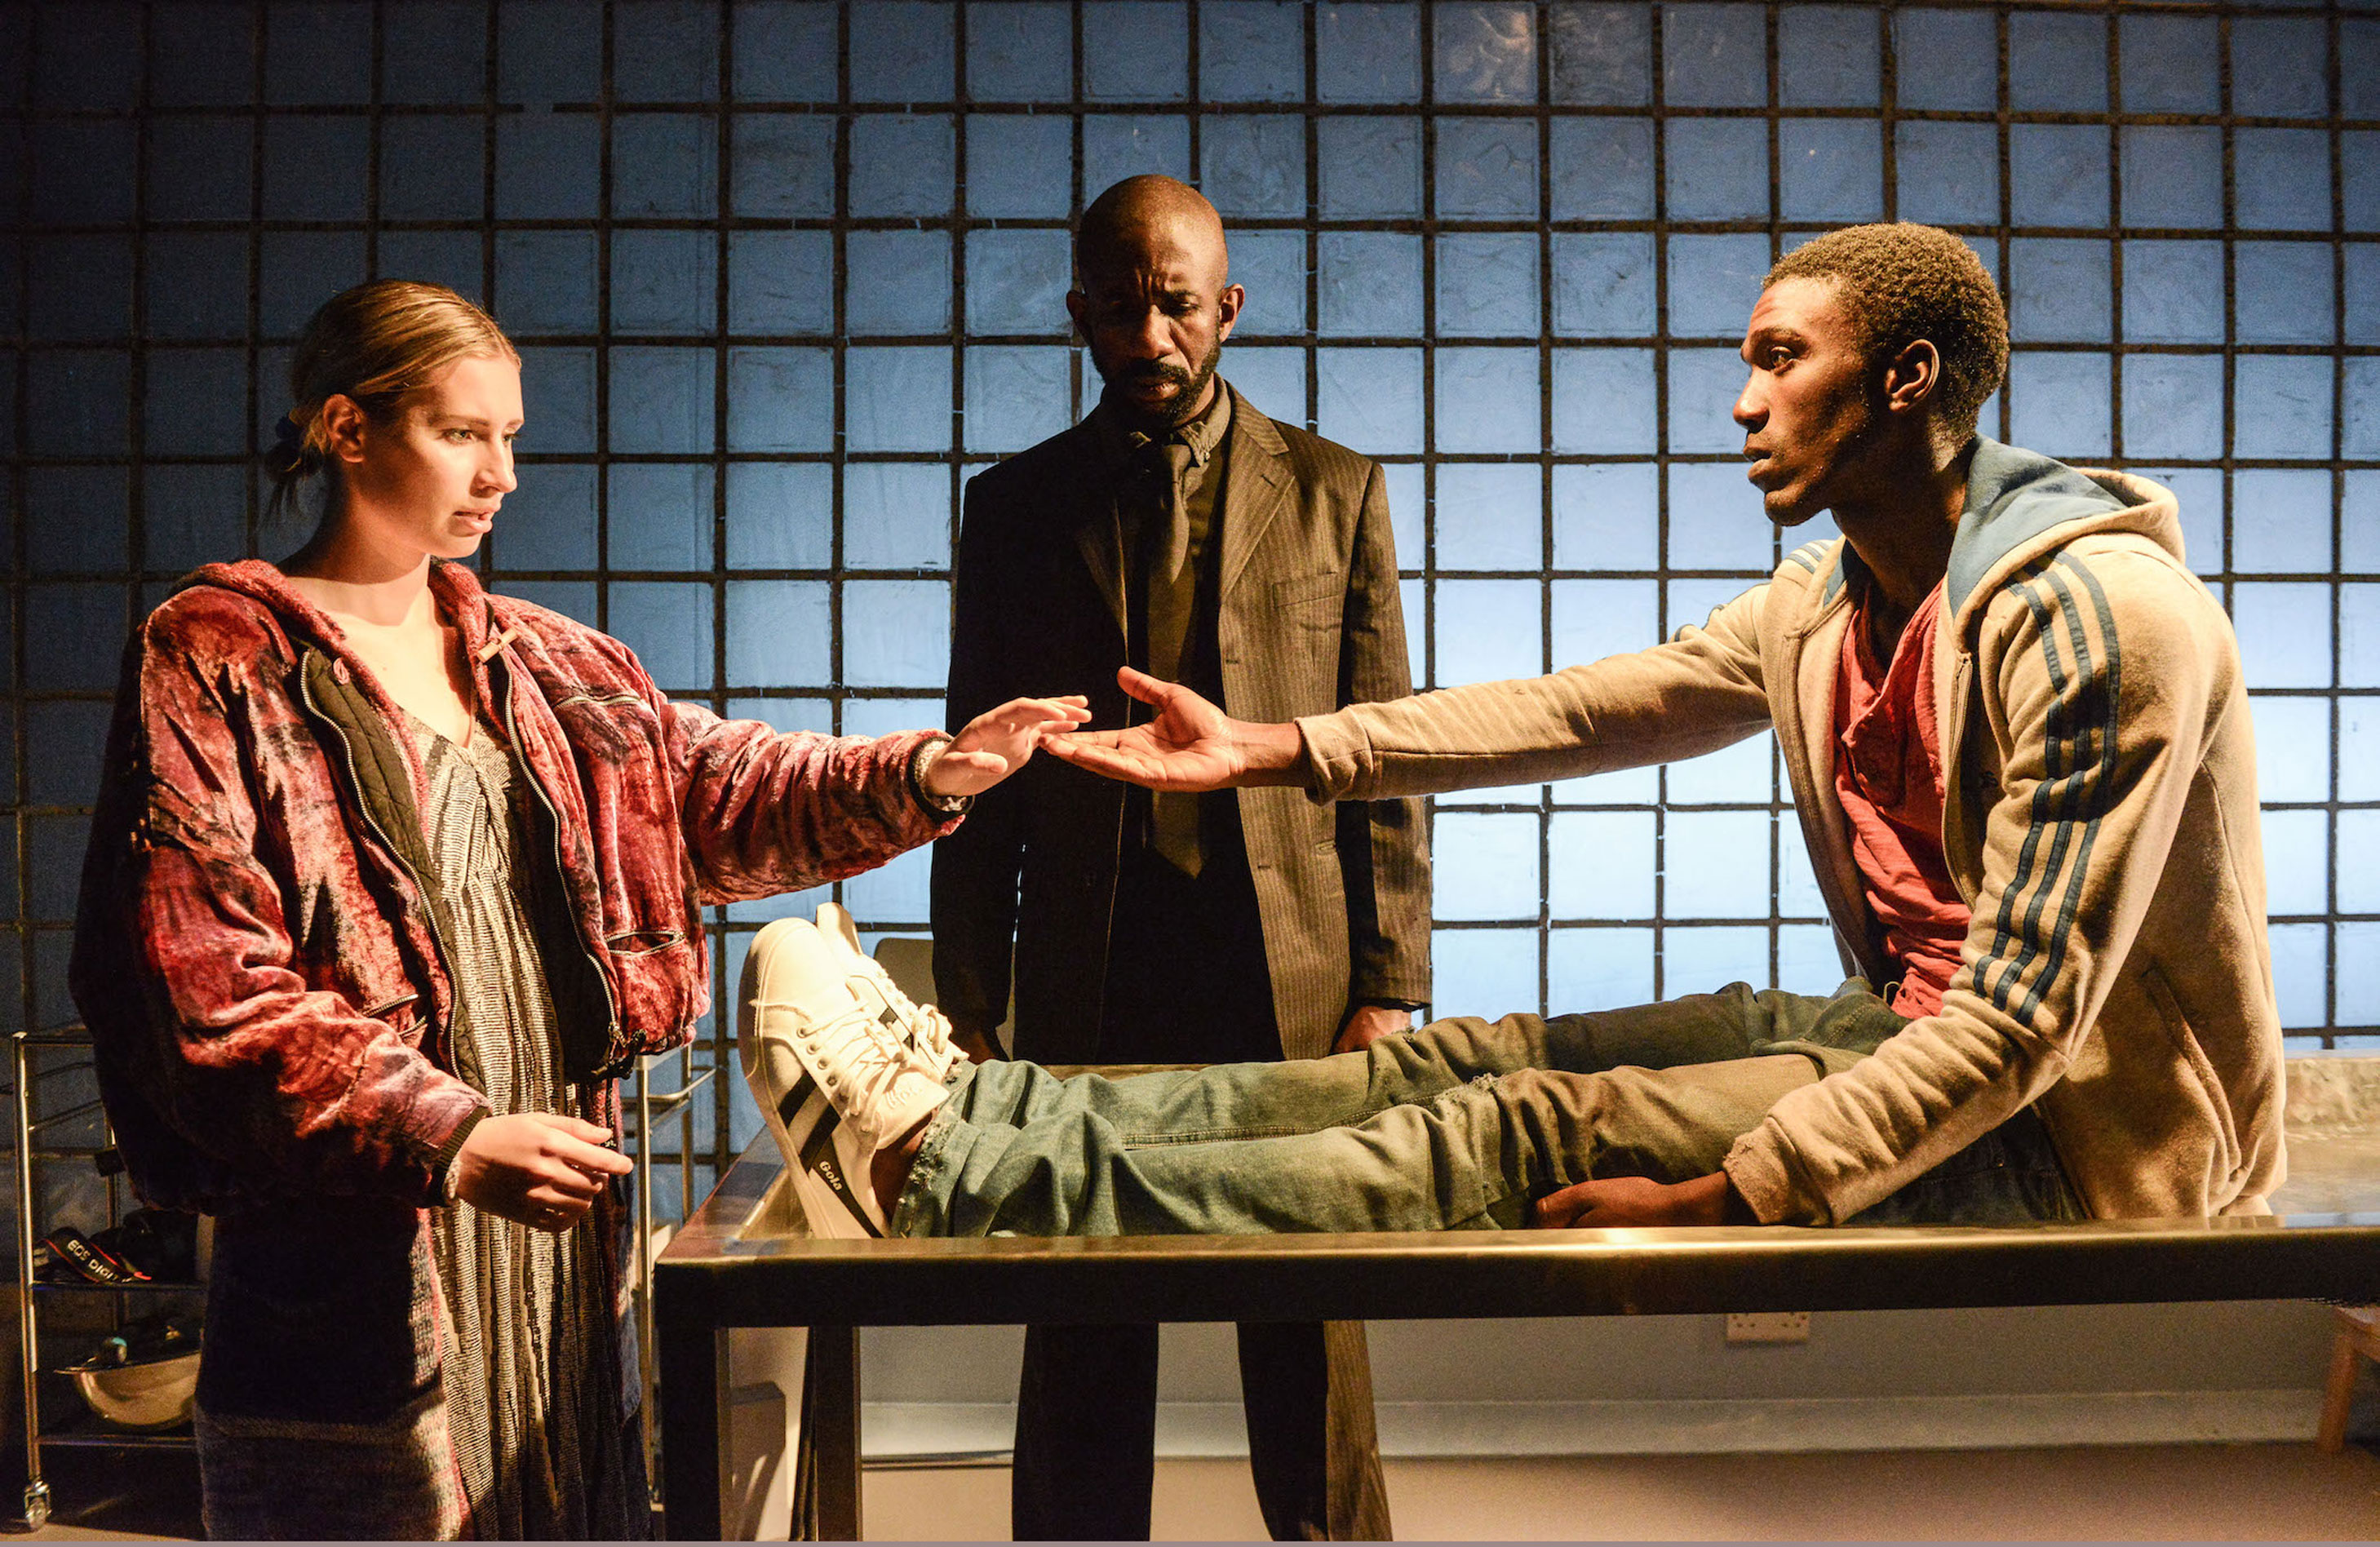 Callie Cooke, Rhashan Stone and Benjamin Cawley in The Strange Death of John Doe at Hampstead Theatre, London. Photo: Robert Day